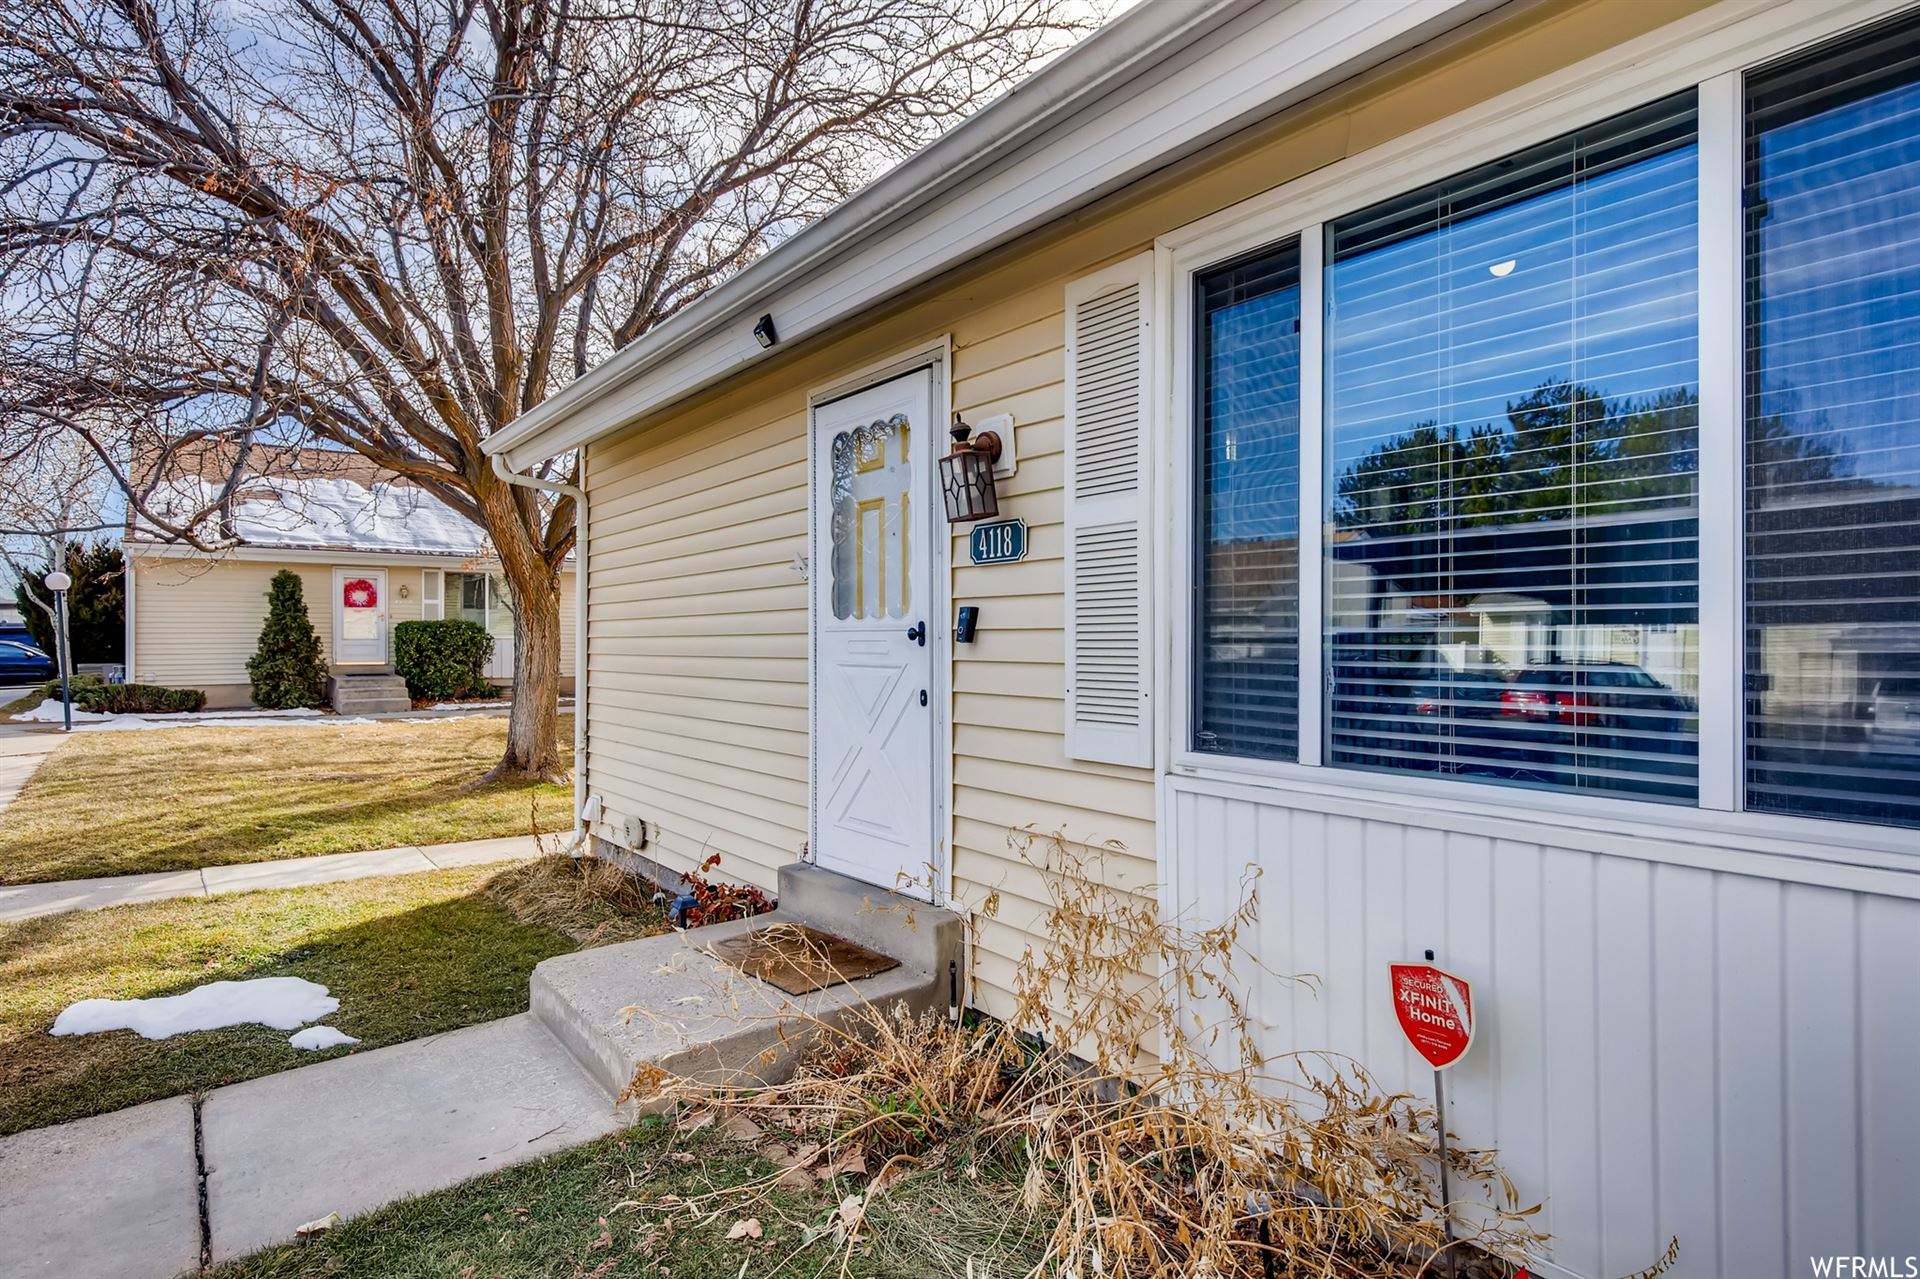 Photo of 4118 S MIDDLEPARK LN, West Valley City, UT 84119 (MLS # 1726888)